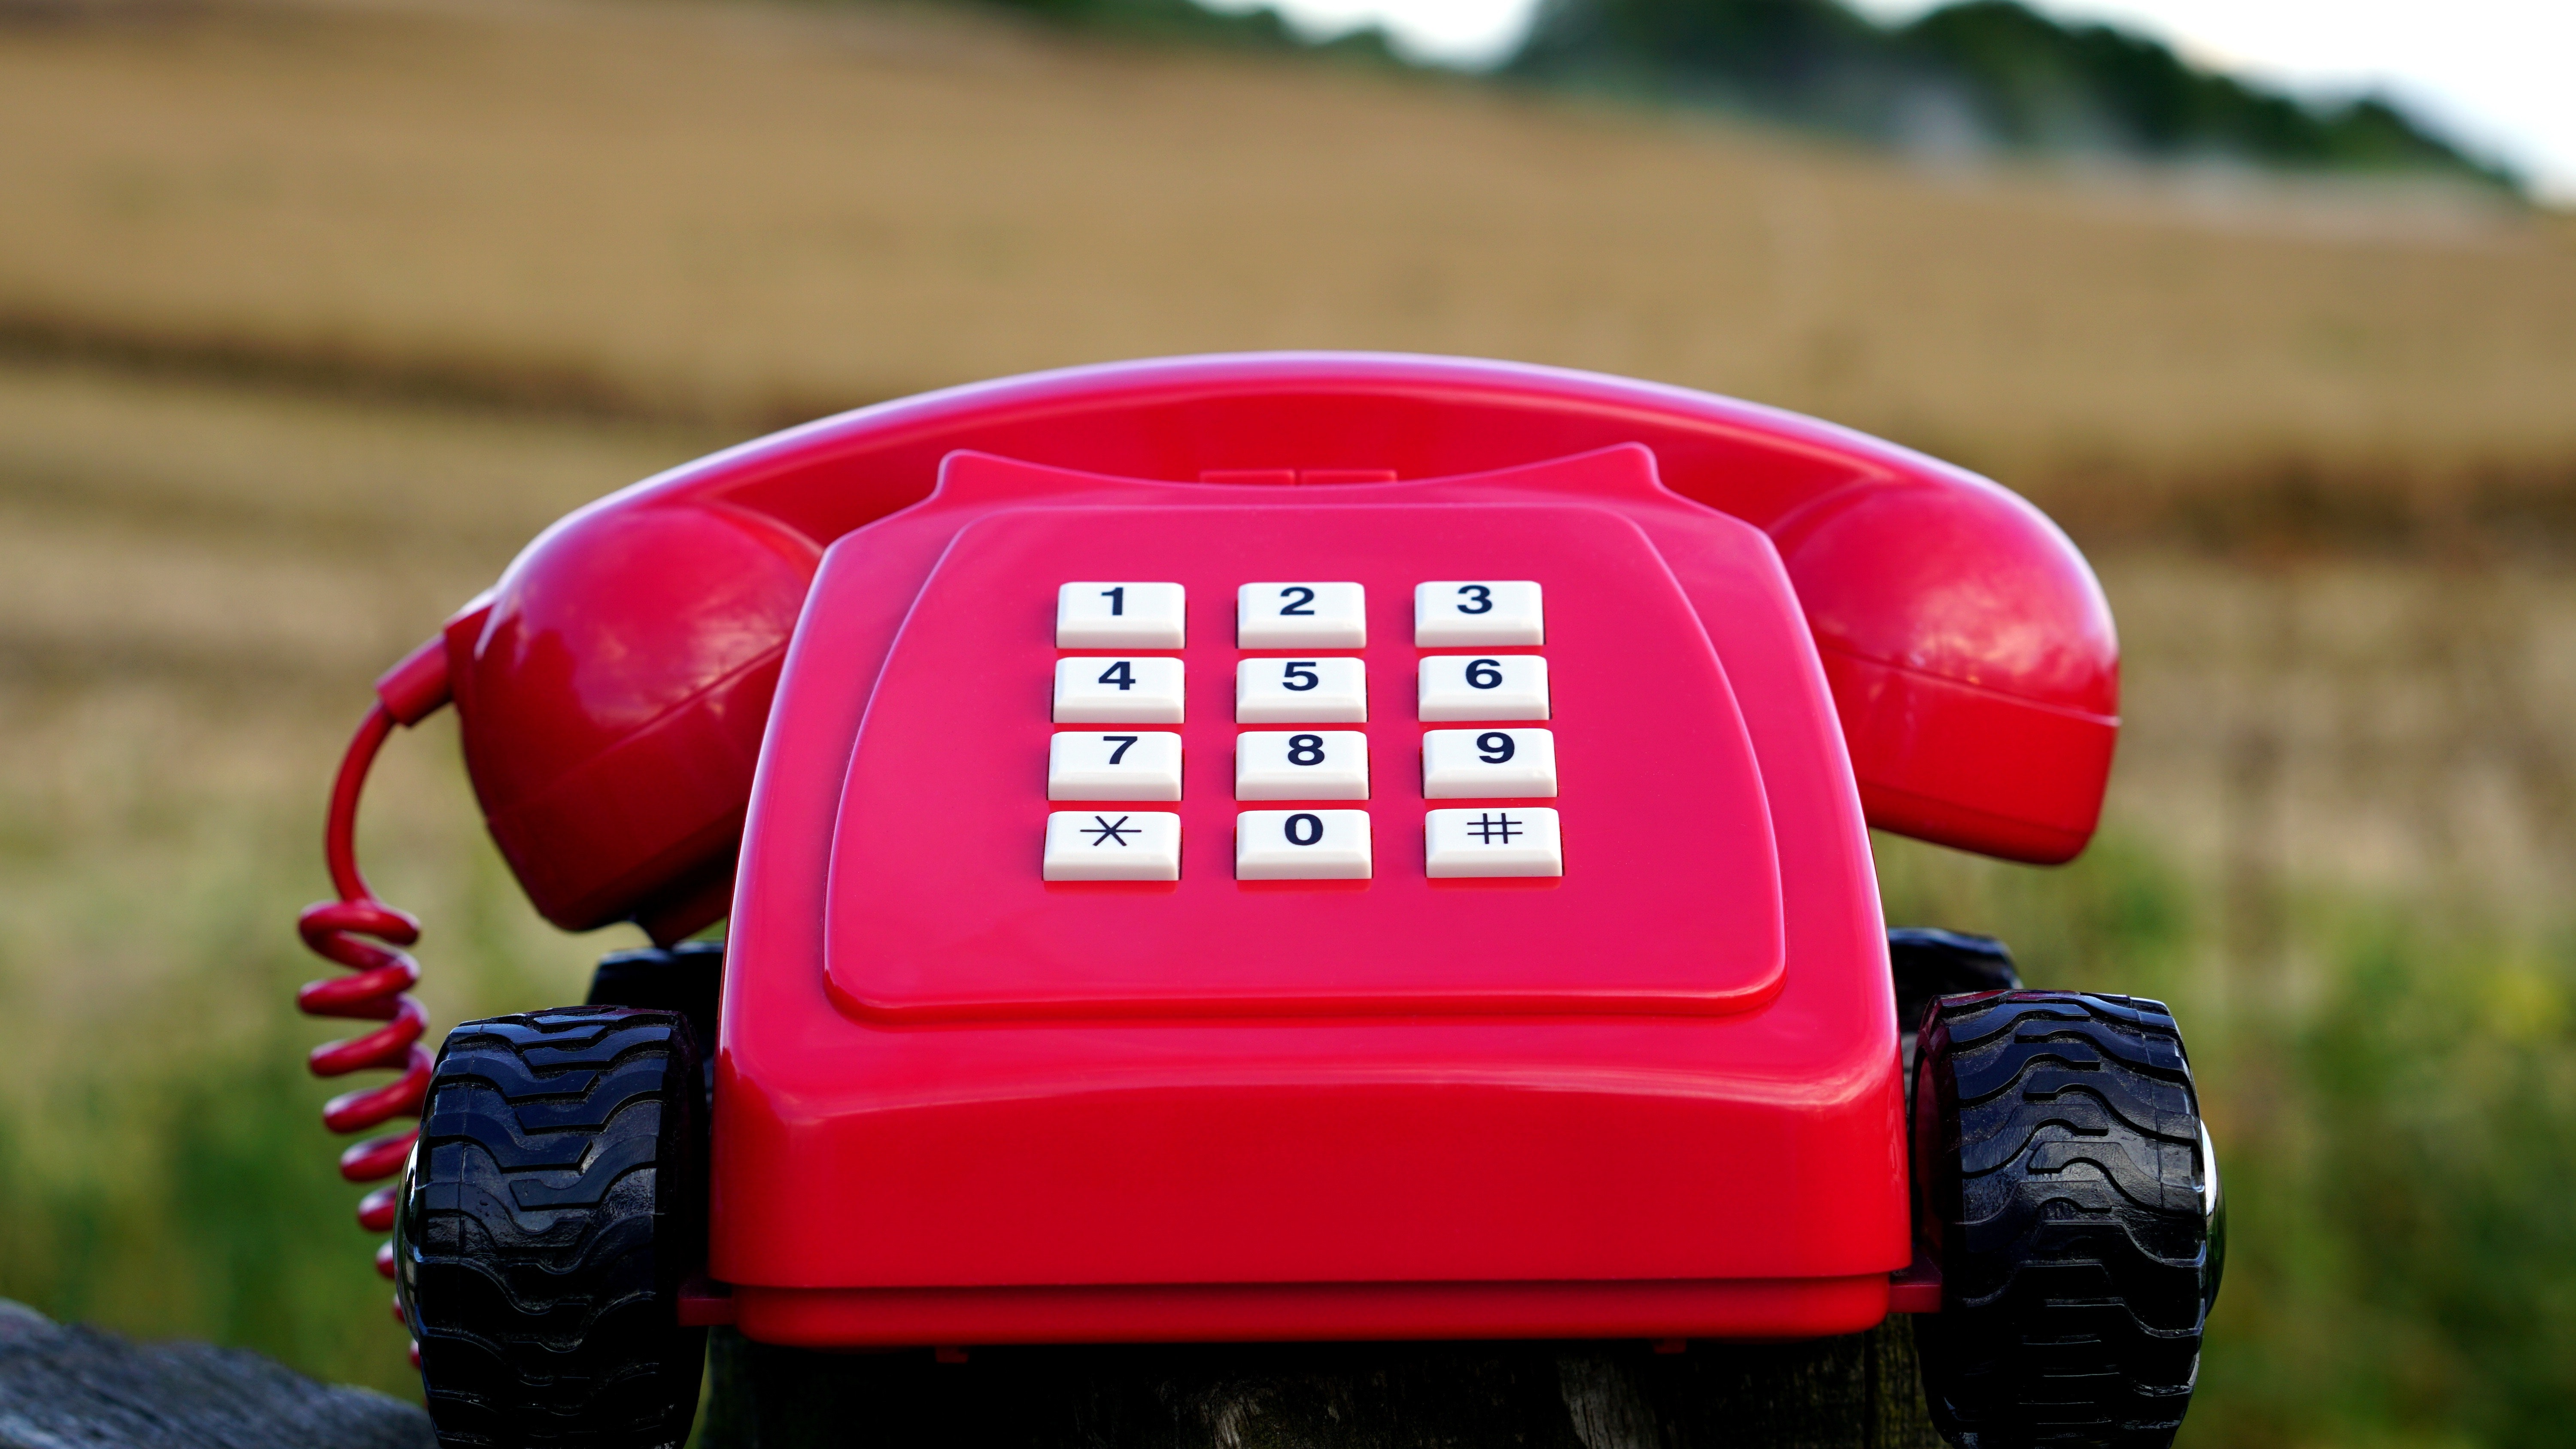 Red rotary phone with black wheels near brown grasses during day time photo